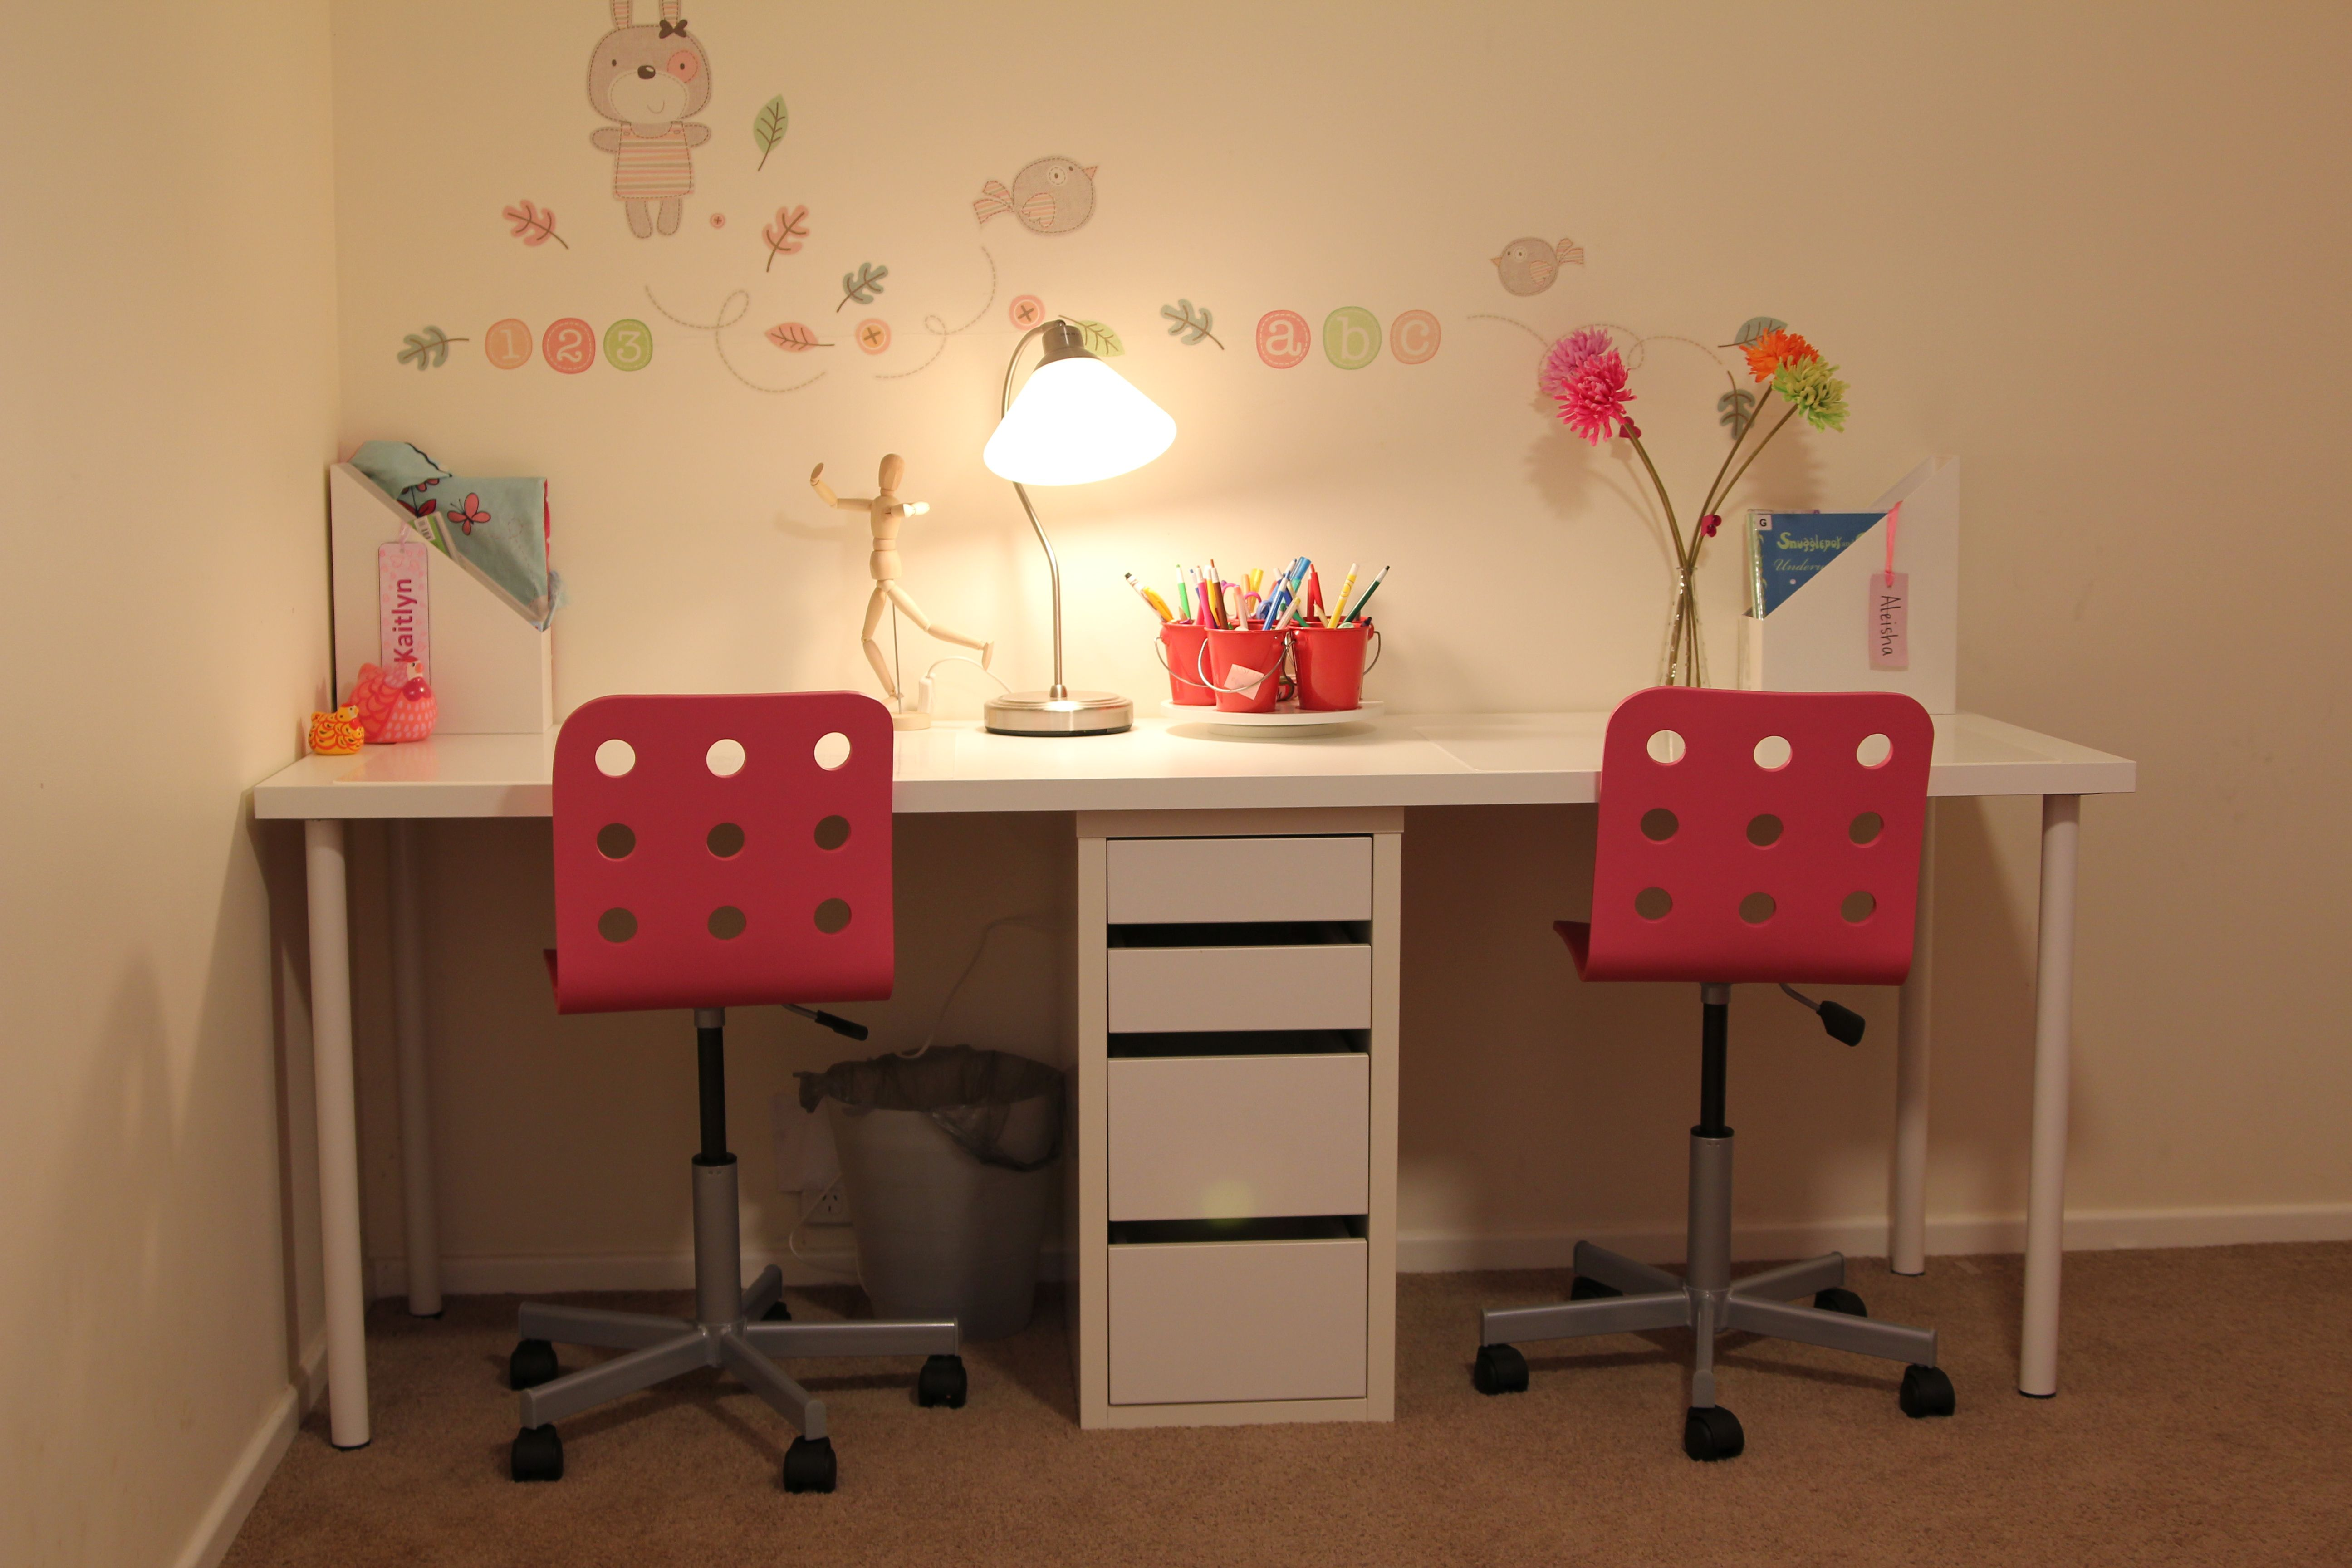 ikea junior desk chair fabric outdoor chairs after much searching around on pinterest i finally landed